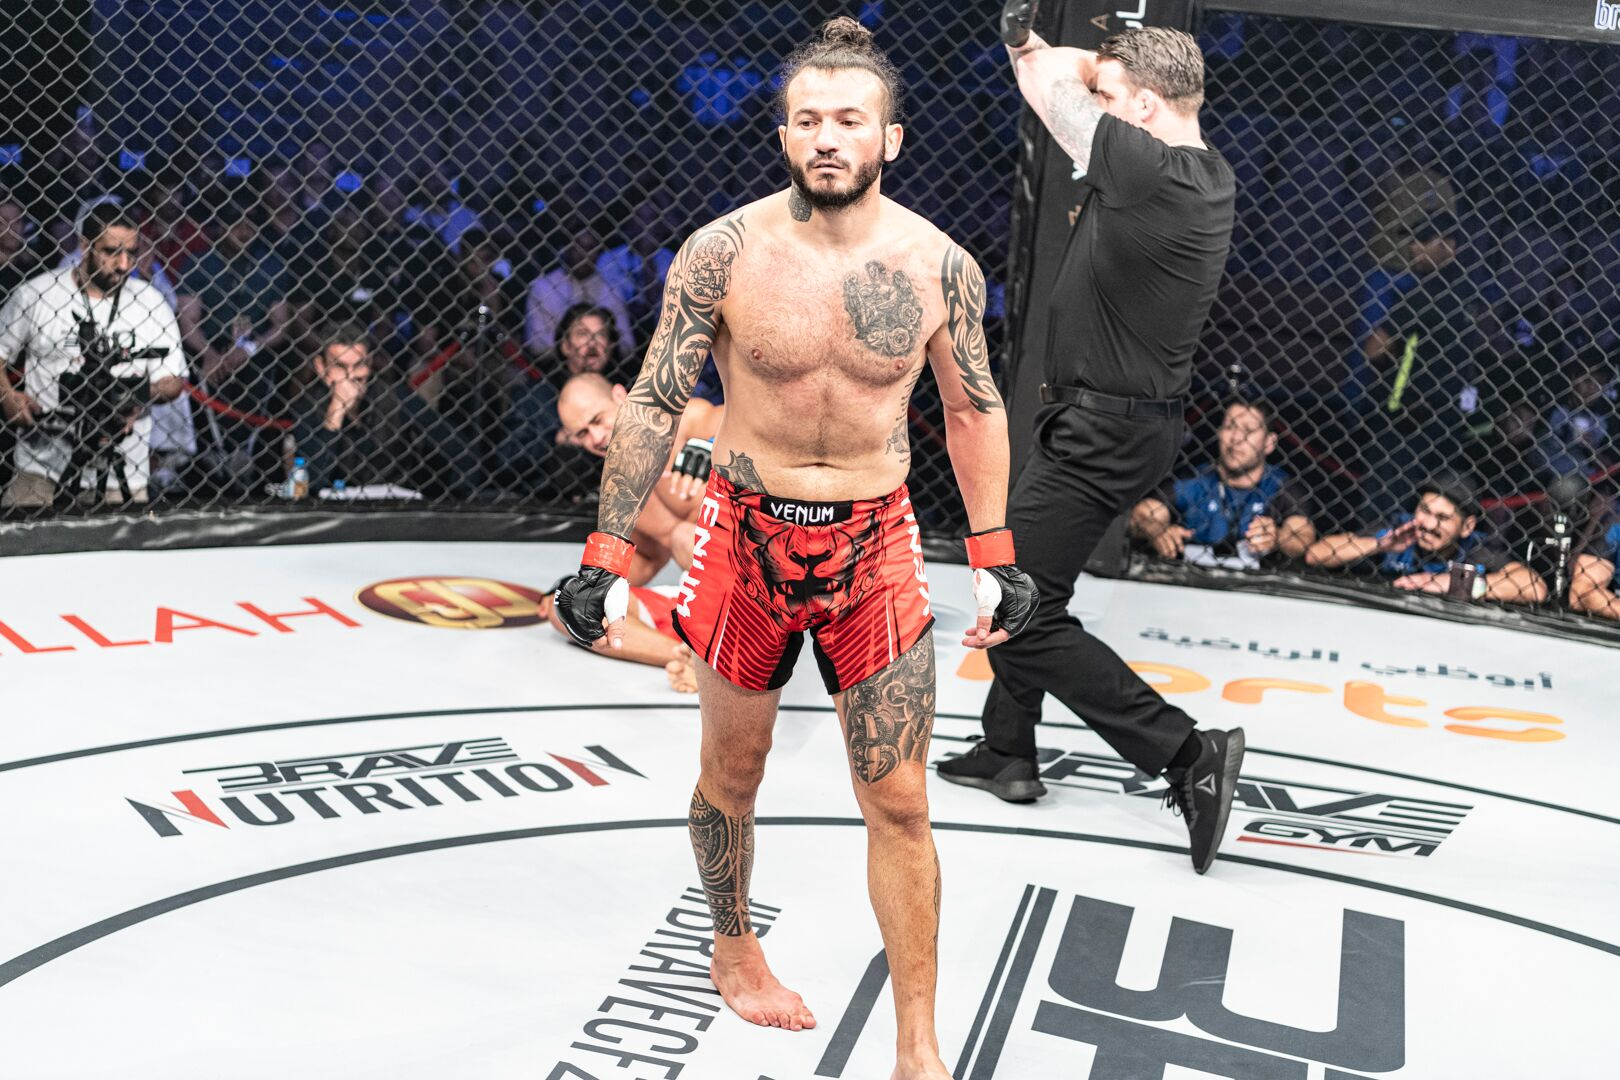 Fakhreddine ready to represent the Middle East at KHK World Championships - BraveFC